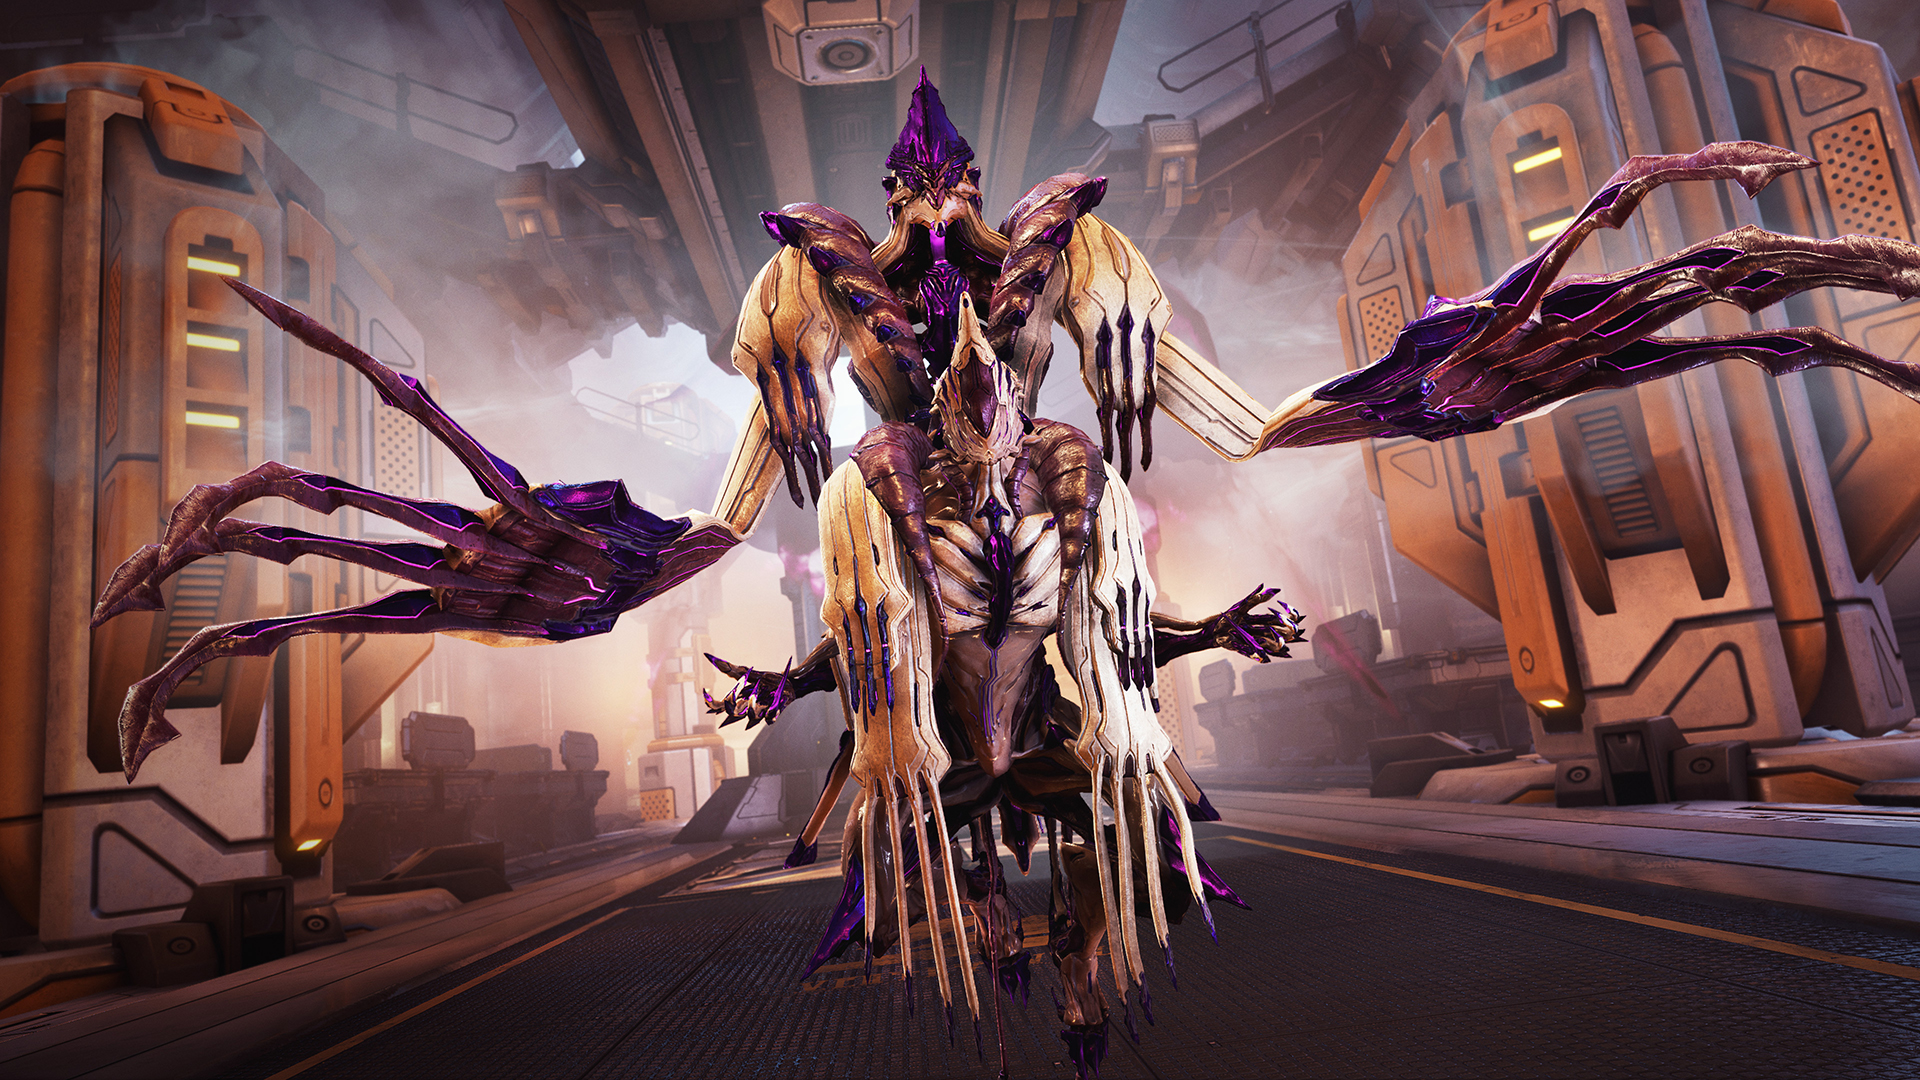 Meet the newest Warframe: a ghastly space captain that reaps souls